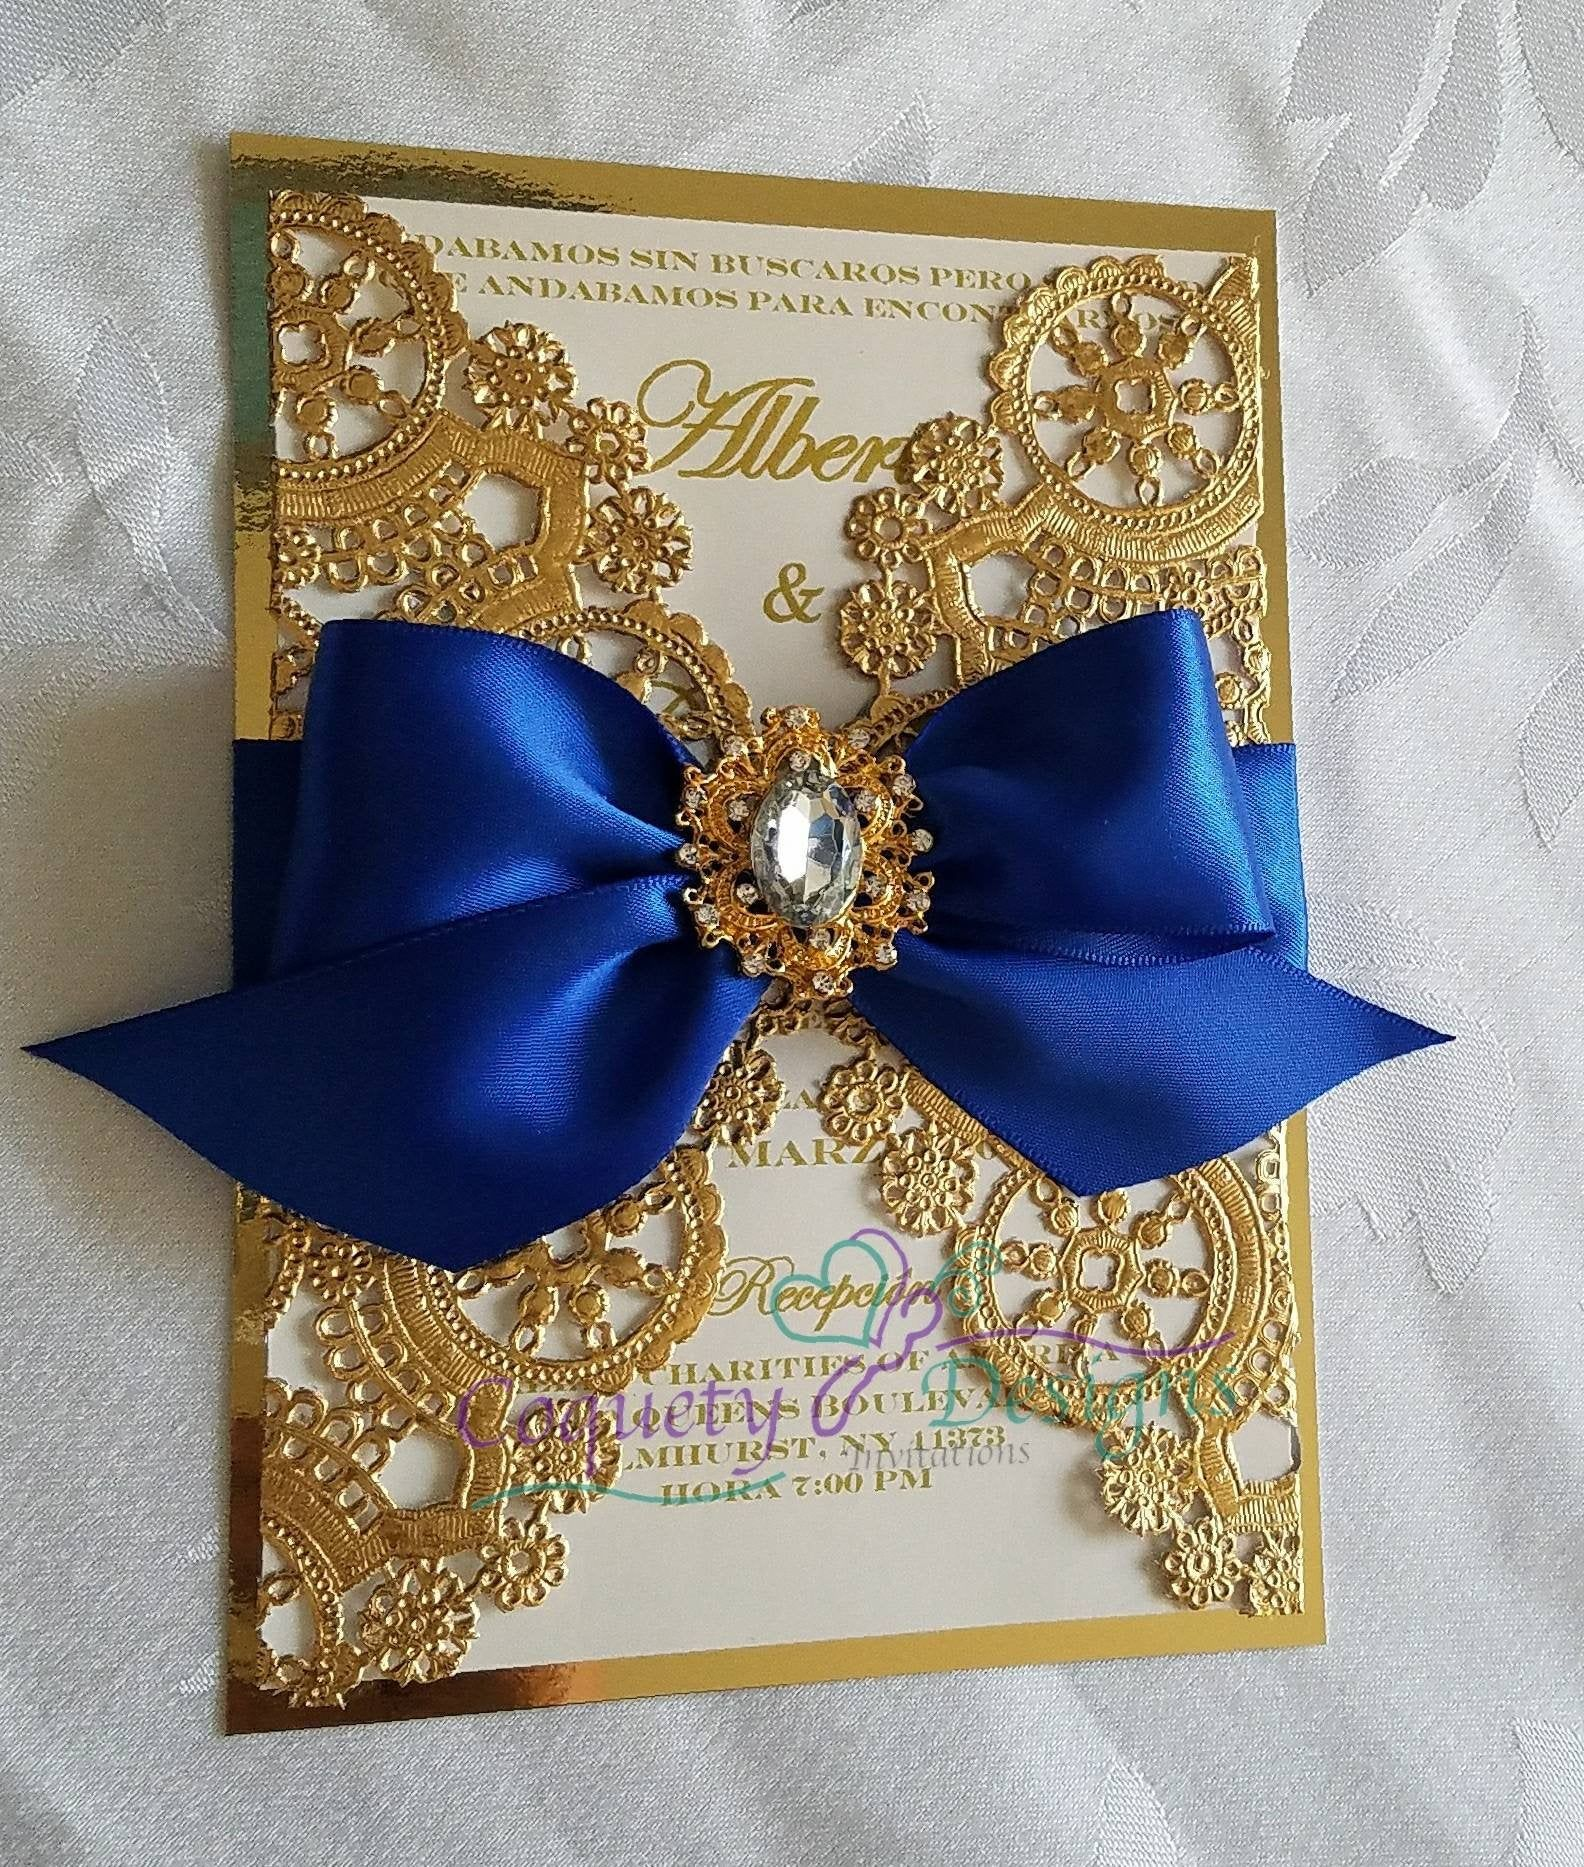 Hermosa invitación real / bodas / Quinceañeras / dulce16 / Birthfays #quinceaneraparty